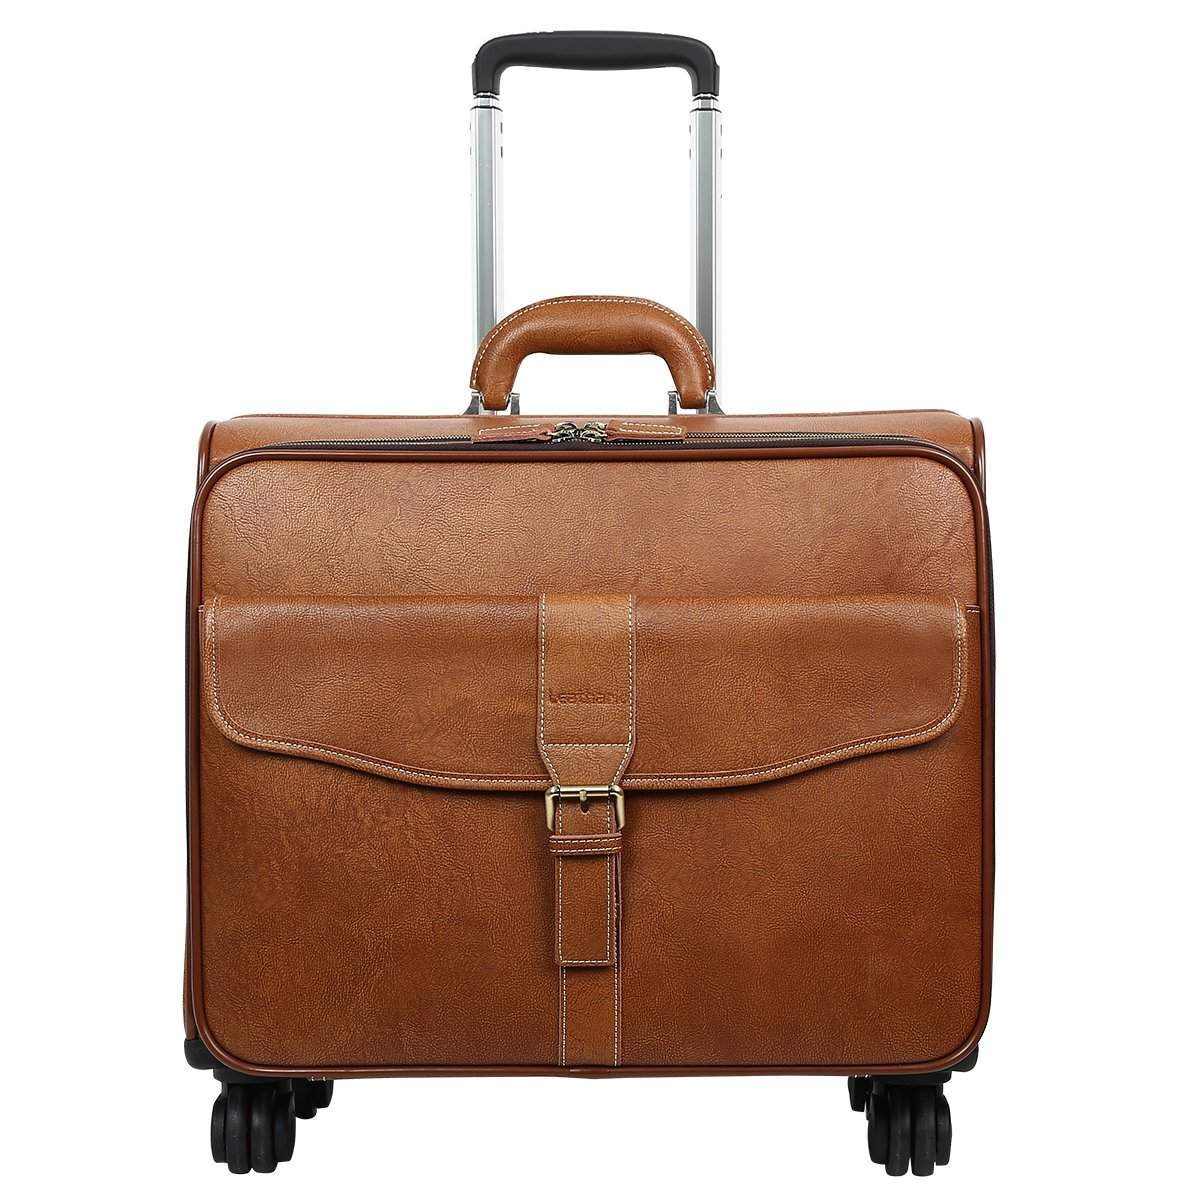 Leathario Leather Rolling Laptop Case Wheeled Briefcase Suitcase Roller Boarding Under Seat Case by Leathario